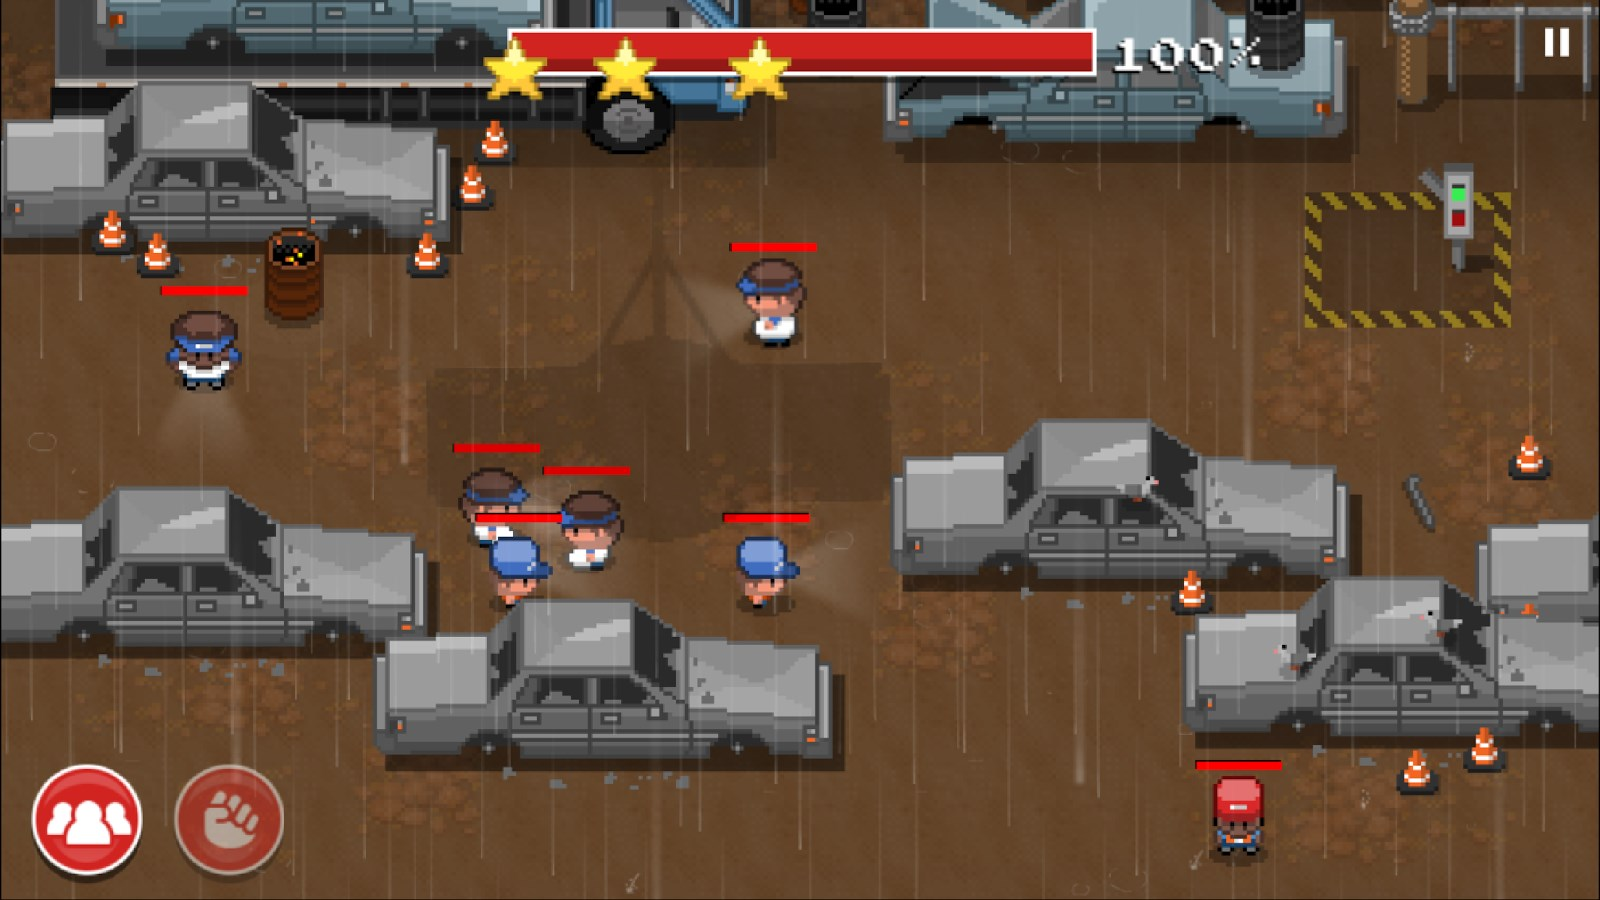 Defend Your Turf: Street Fight - Imagem 2 do software